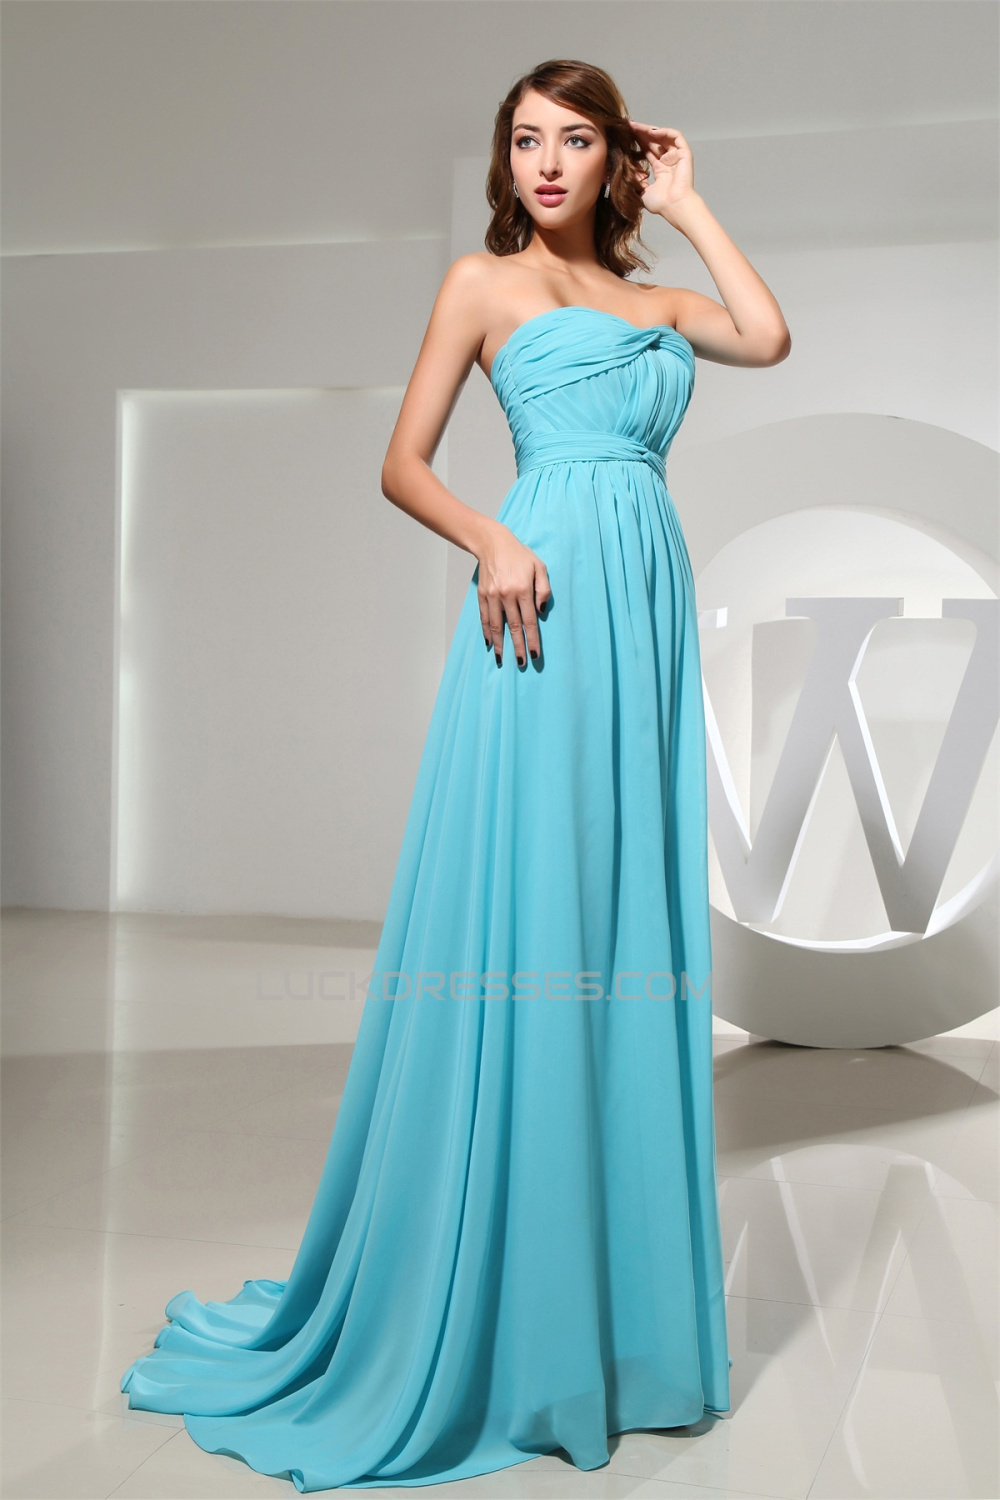 Line sweetheart criss cross puddle train long bridesmaid dresses a line sweetheart criss cross puddle train long bridesmaid dresses 02010231 ombrellifo Image collections